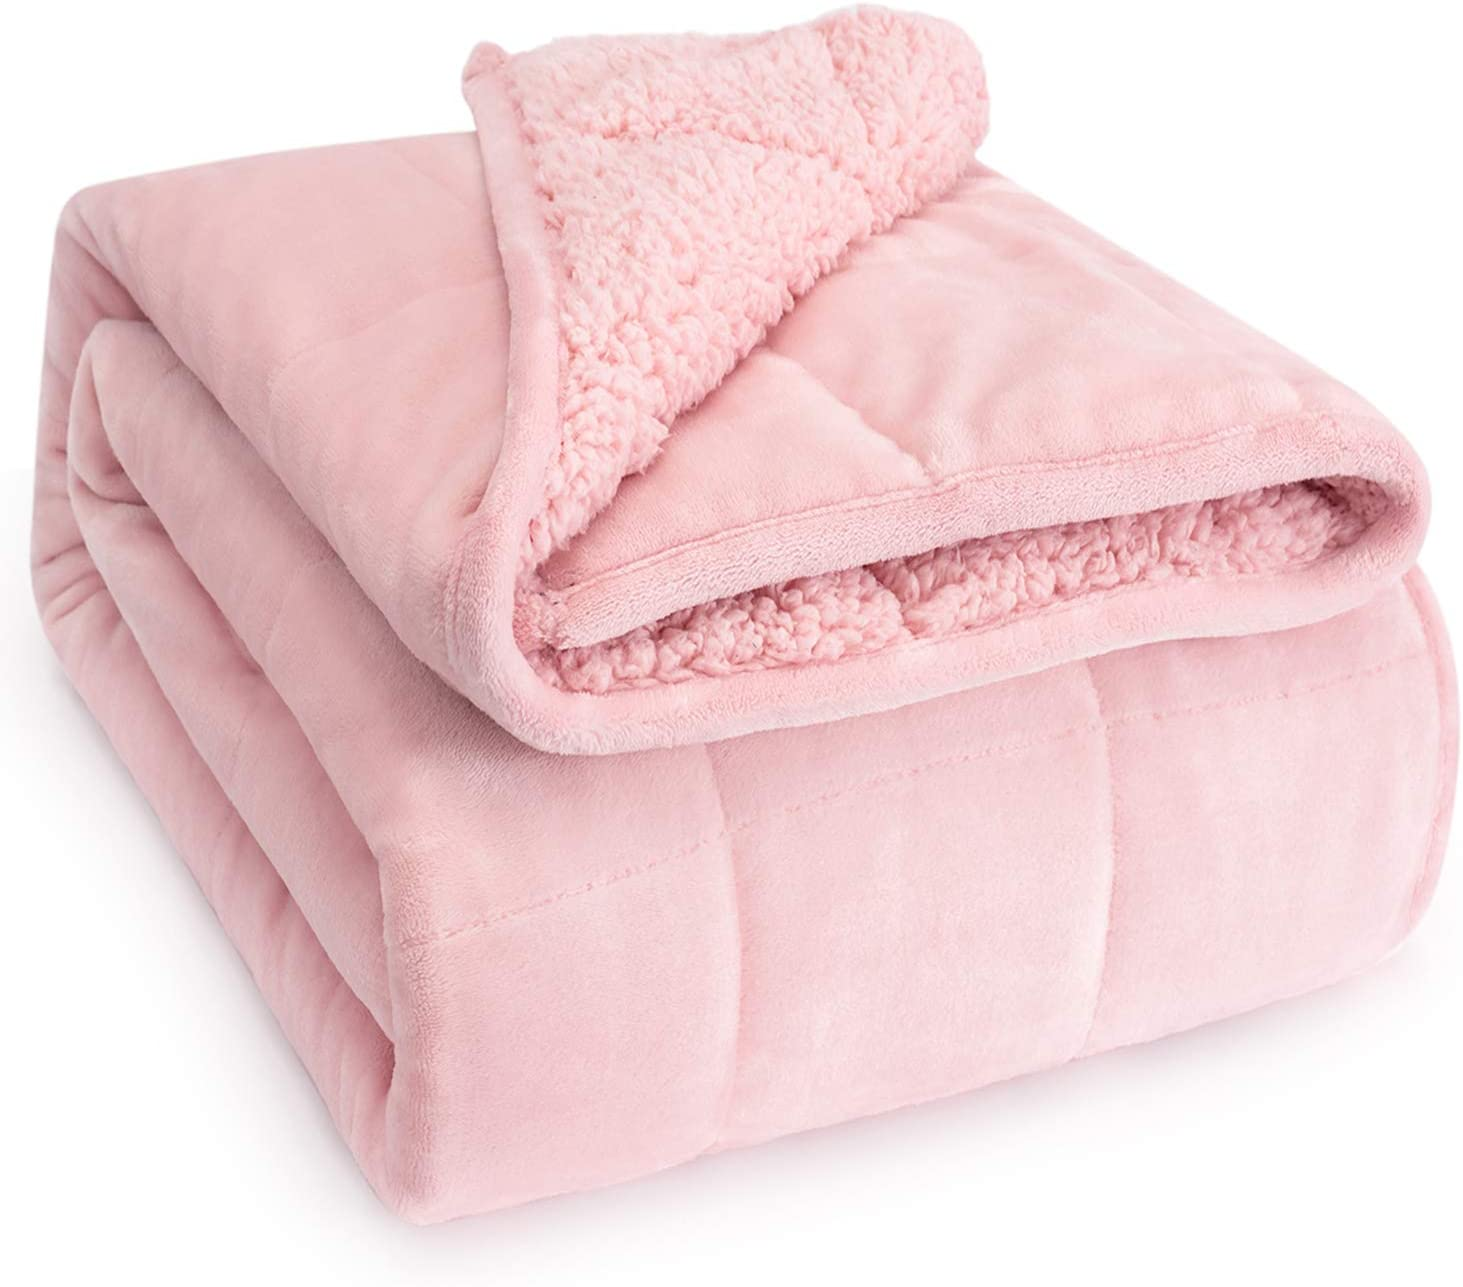 Wemore Sherpa Fleece Weighted Blanket For Adult 15 Lbs Dual Sided Cozy Fluffy Heavy Blanket Burgundy